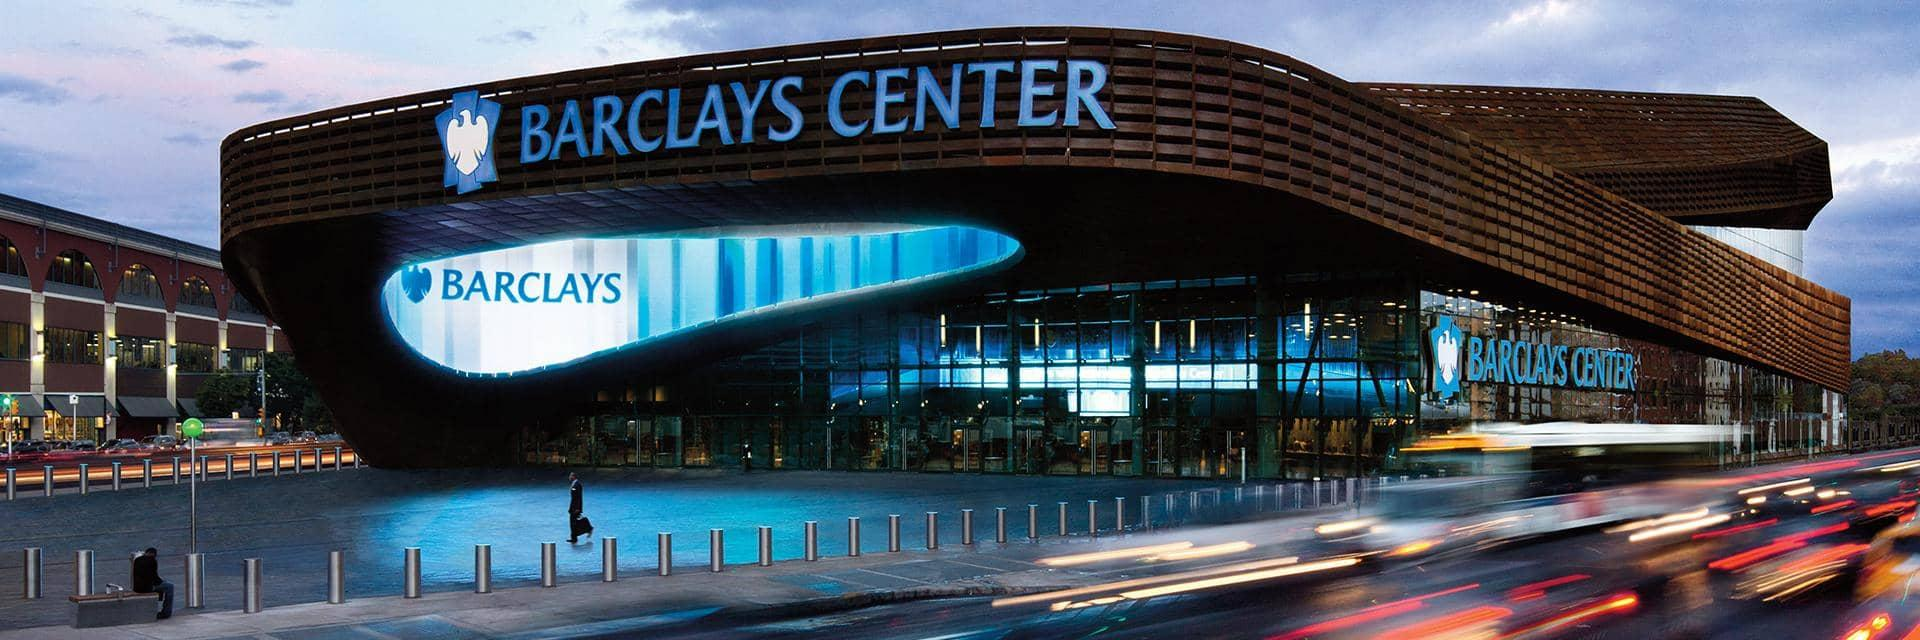 Barclays Center - Careers